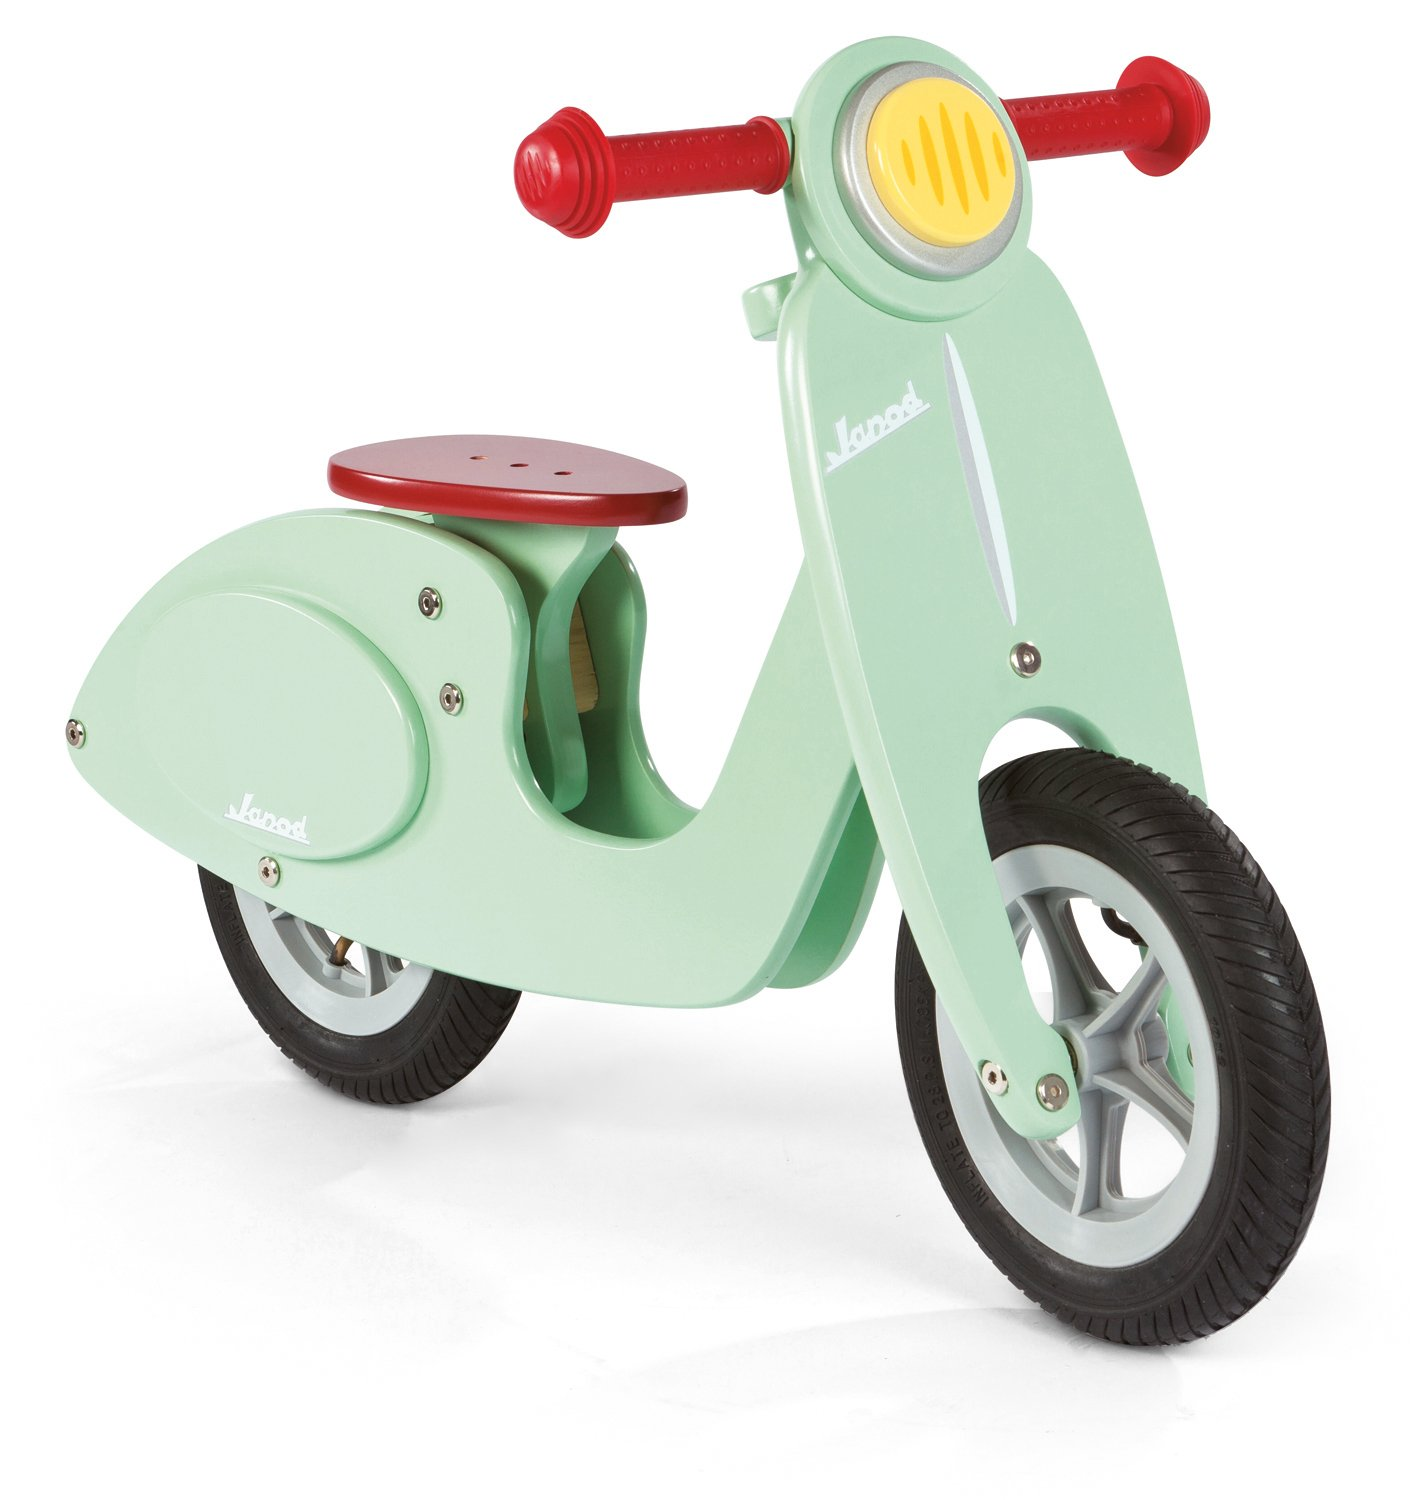 Scooter Bike Outdoor Toys Ride Janod Mint Green Retro Wooden Boys